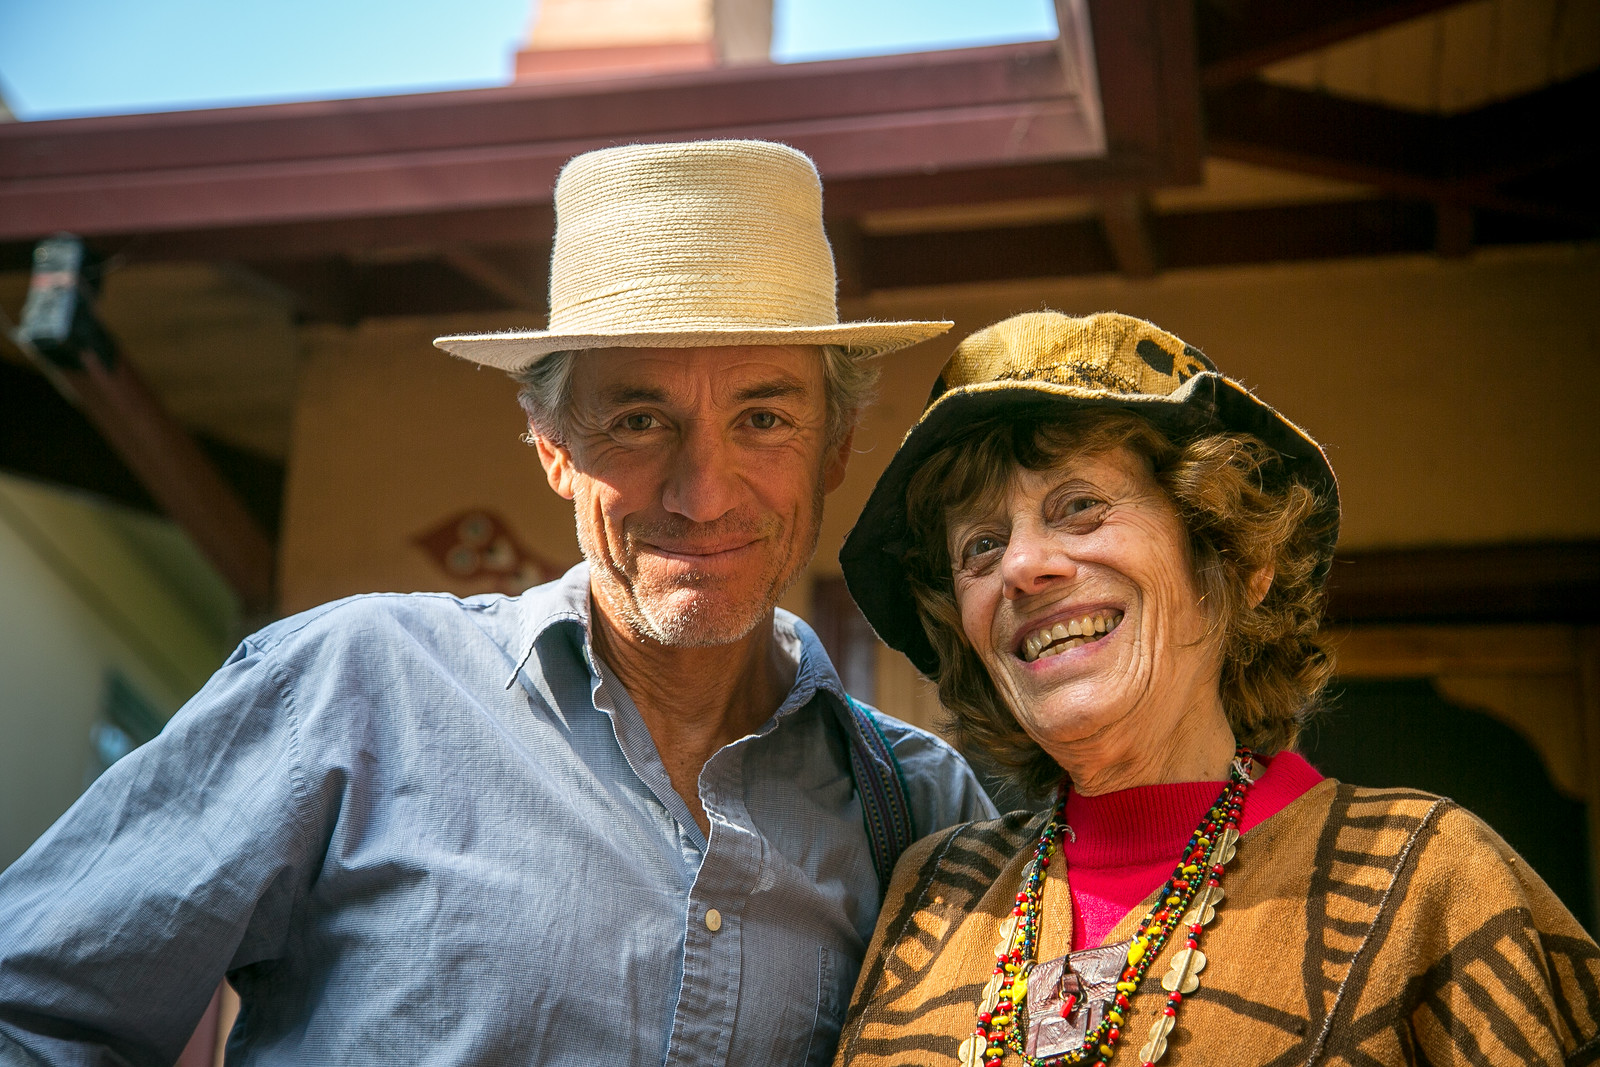 Peter Rudy and Beany Wezelman (November 2017)